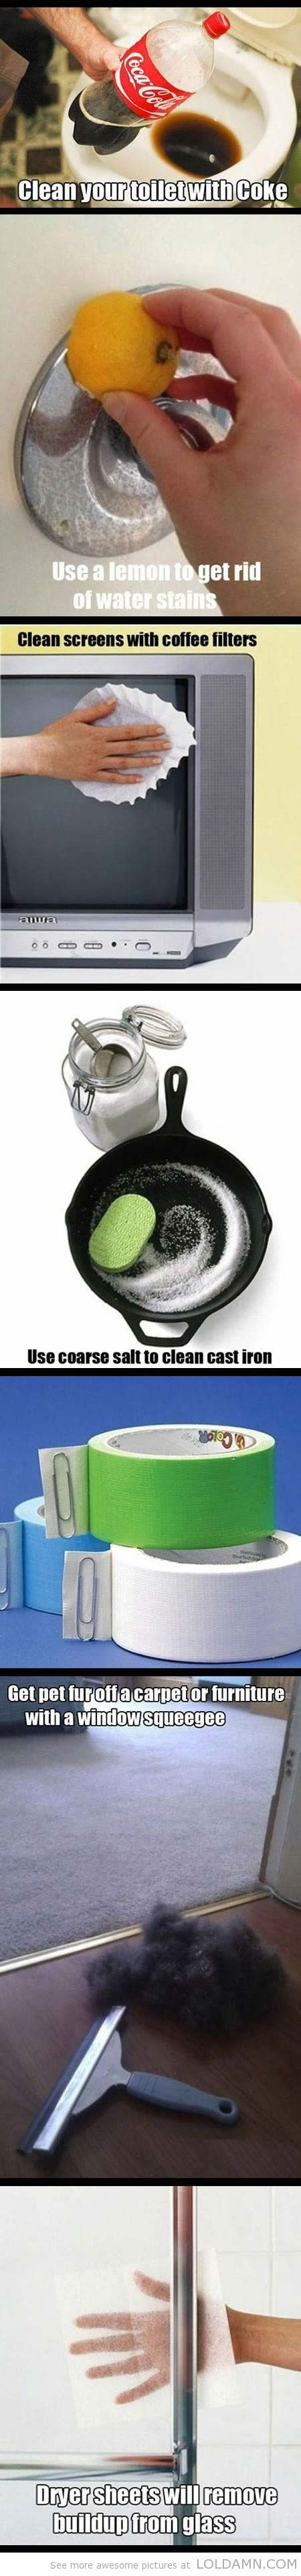 Toilet Cleaning Tips 101